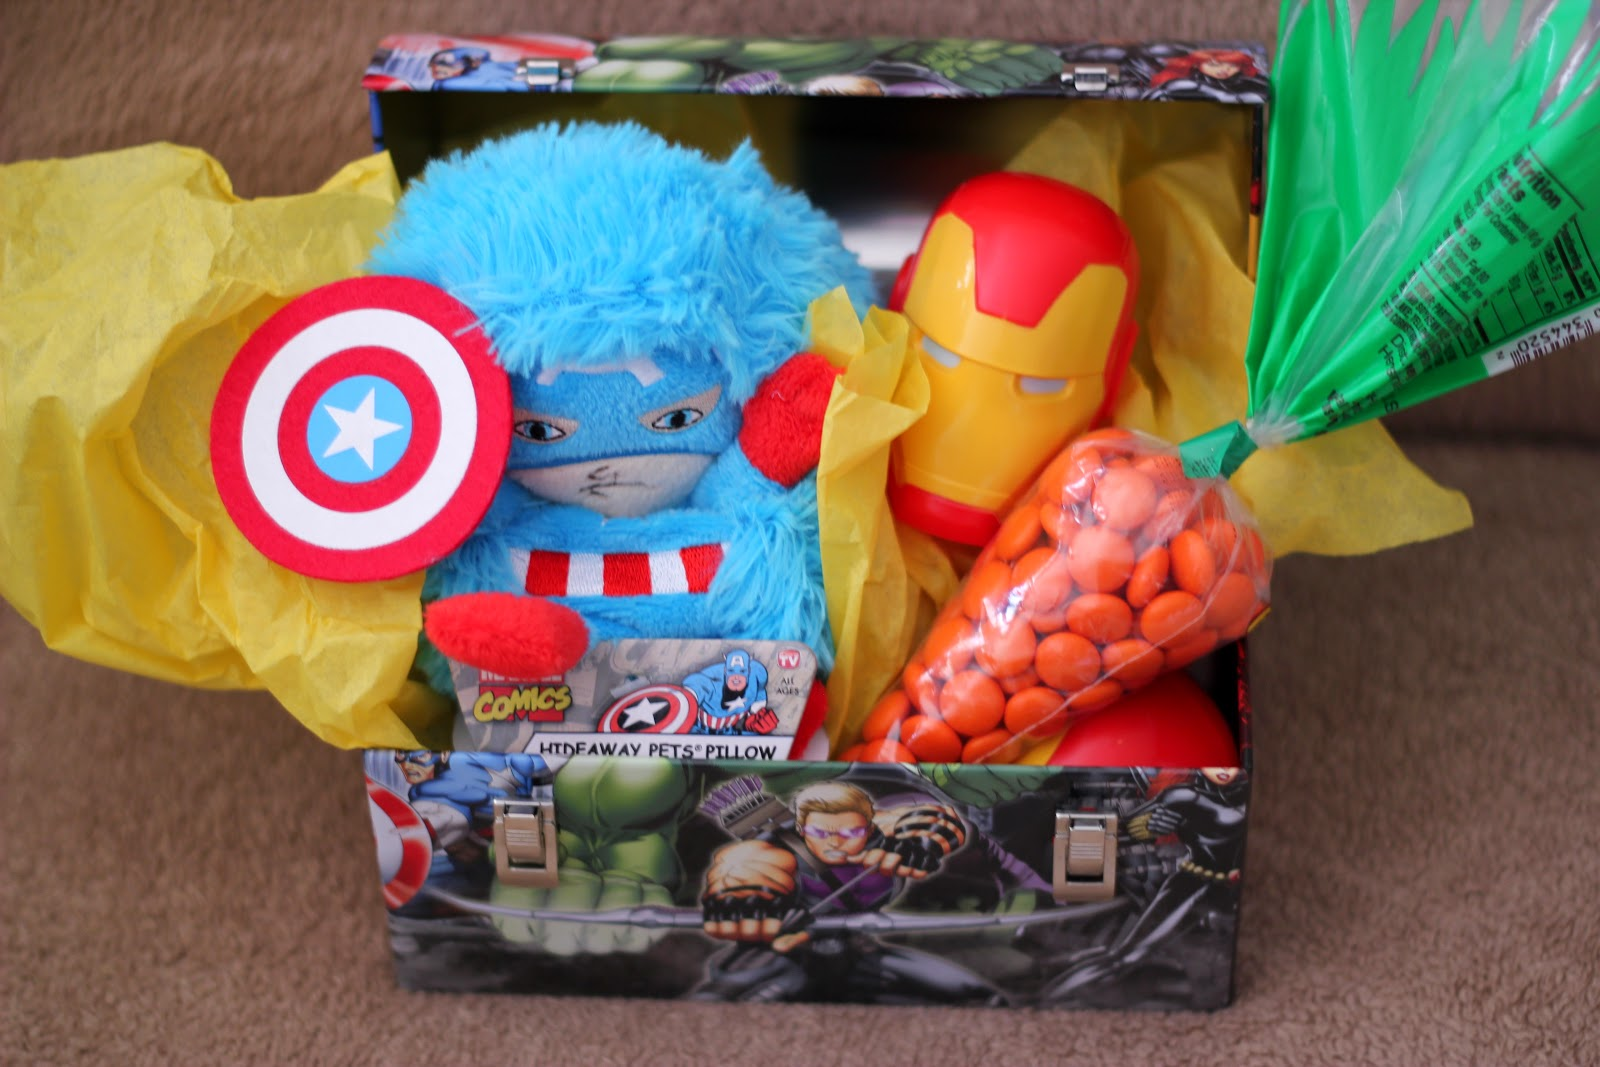 Lille punkin 5 easy character easter basket ideas for under 20 1 negle Gallery